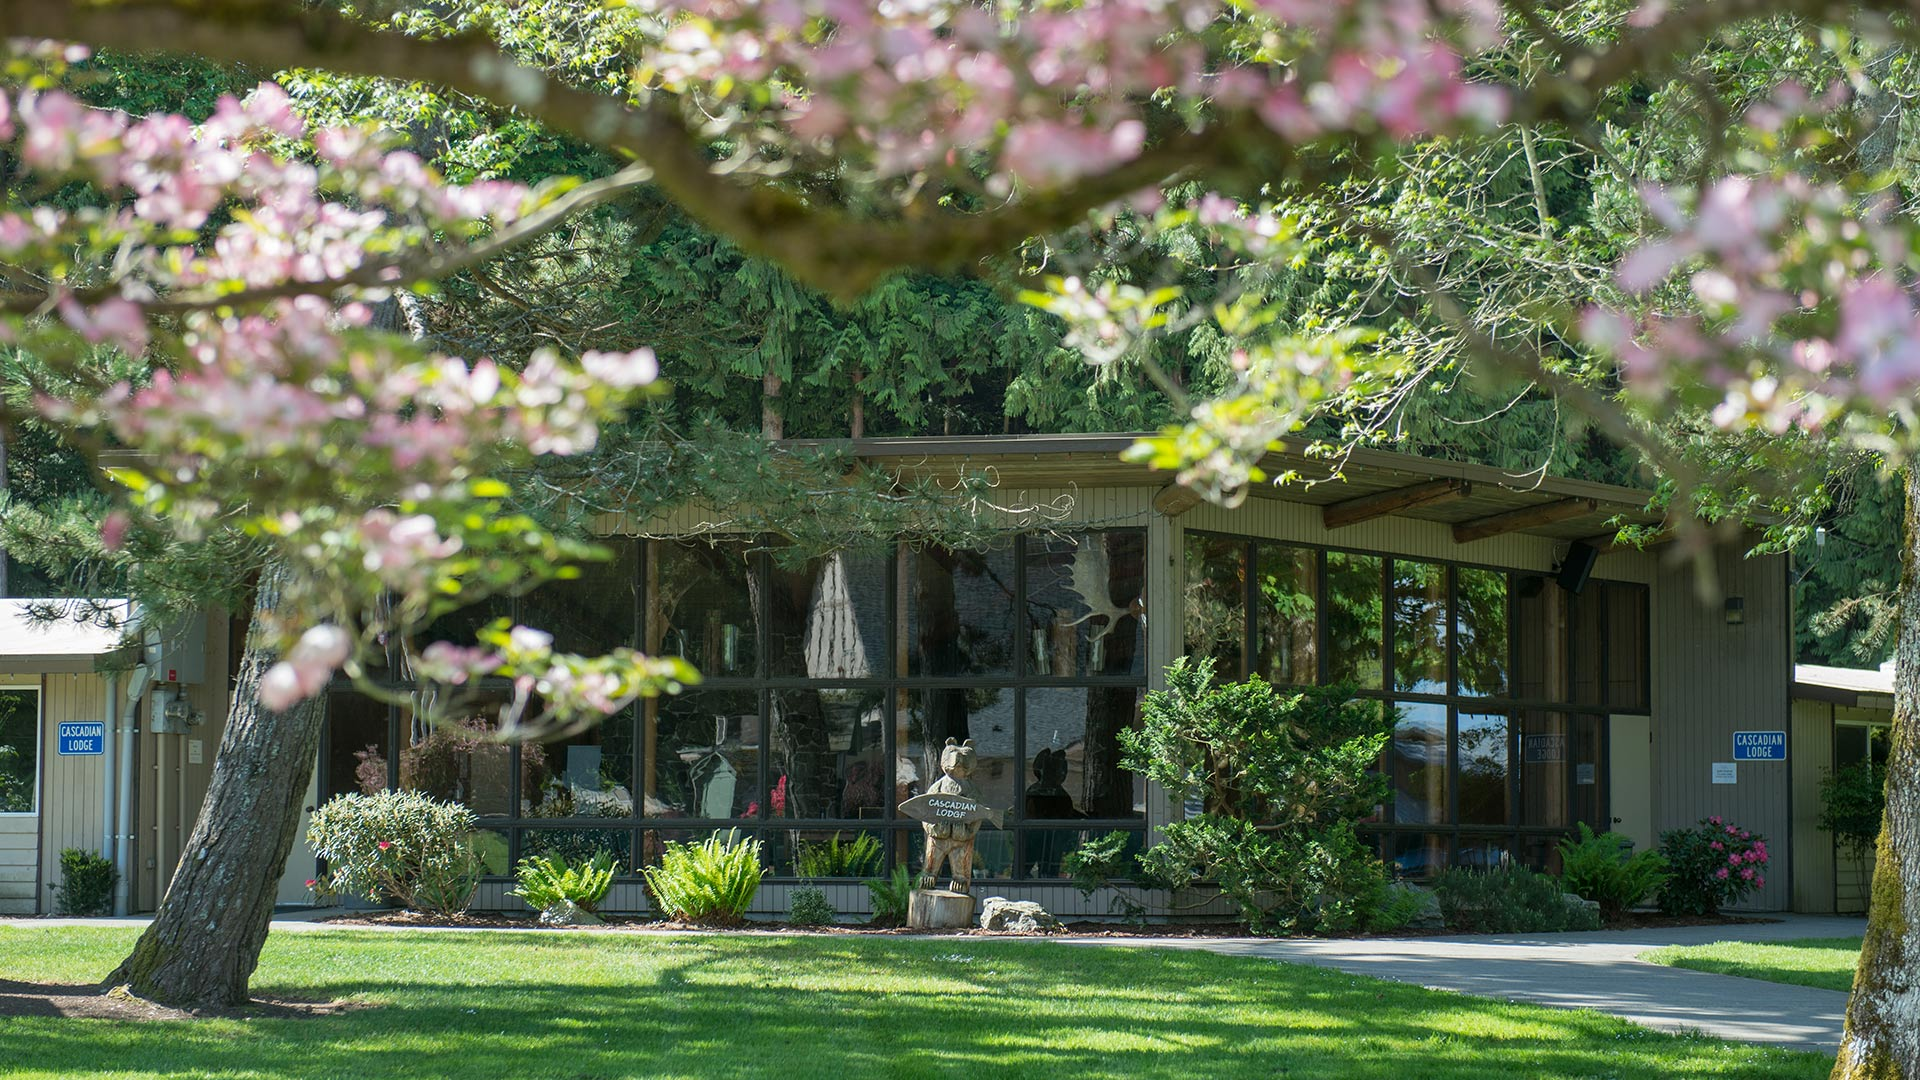 Lodging at Warm Beach Camp & Conference Center, Stanwood, WA, near Seattle.